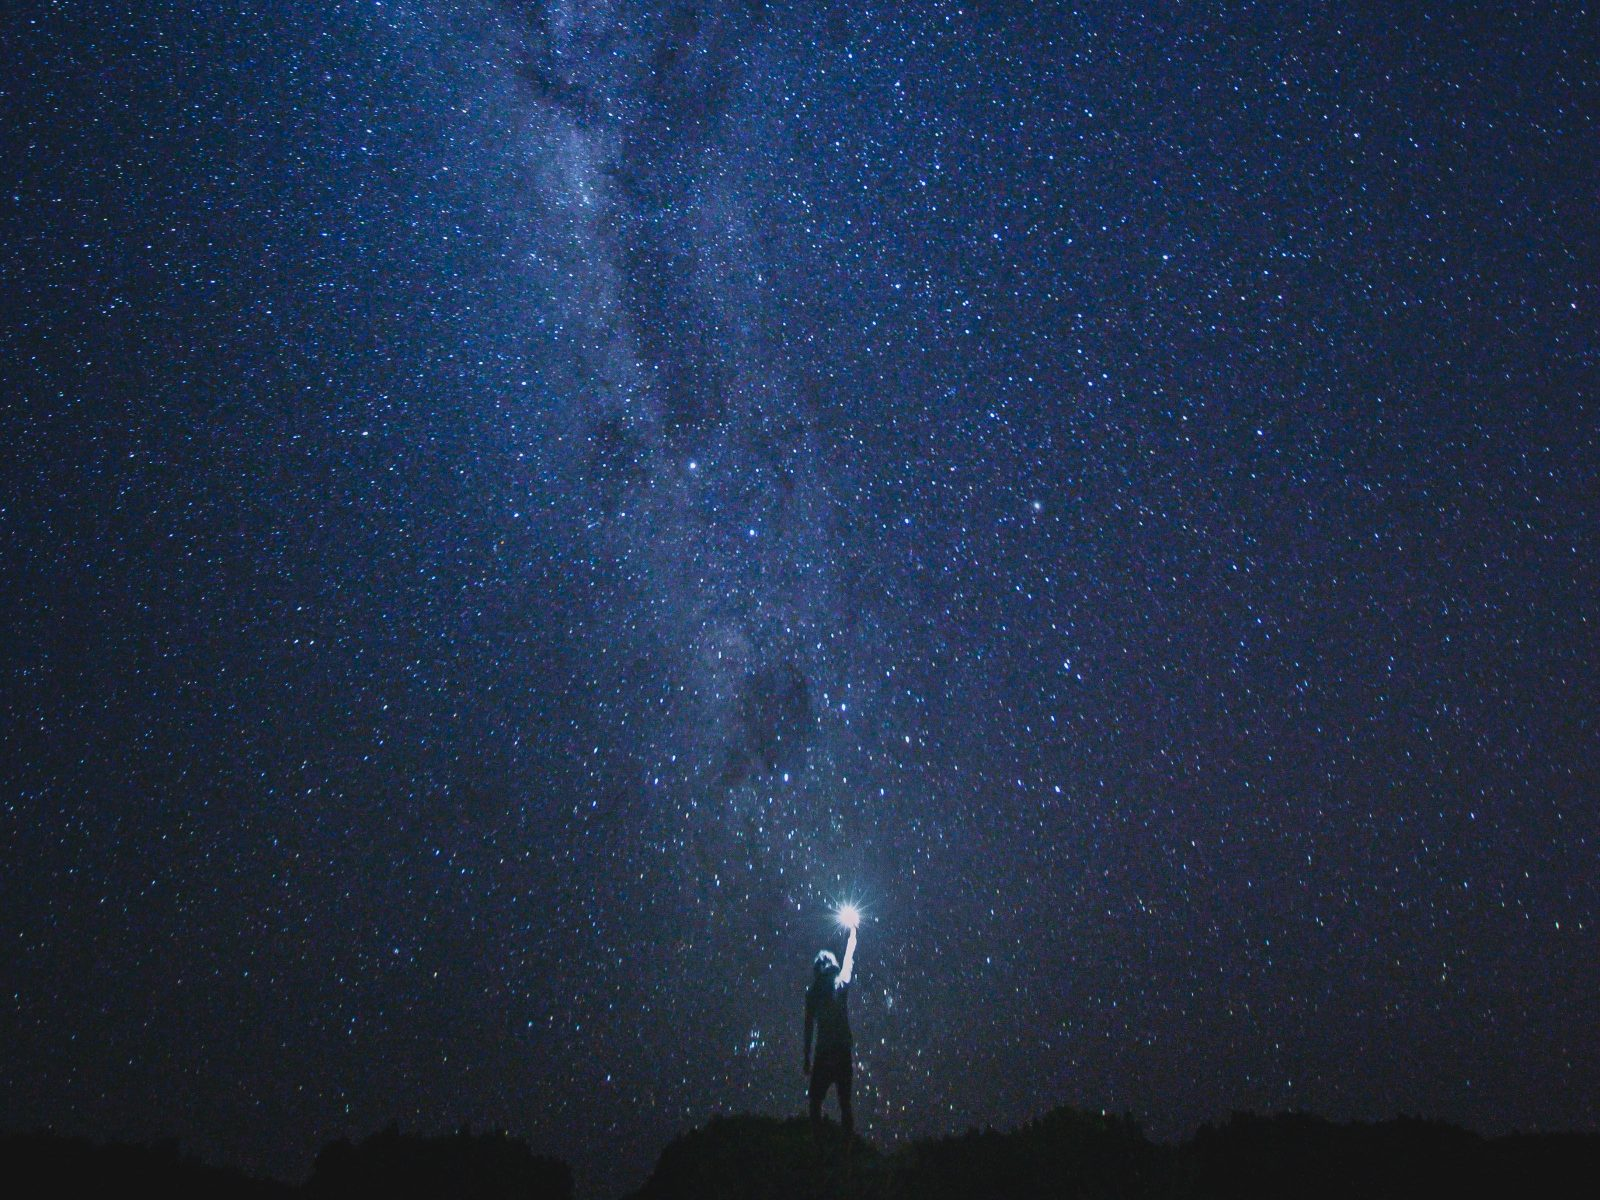 The starriest skies in NSW: Warrumbungle National Park ...